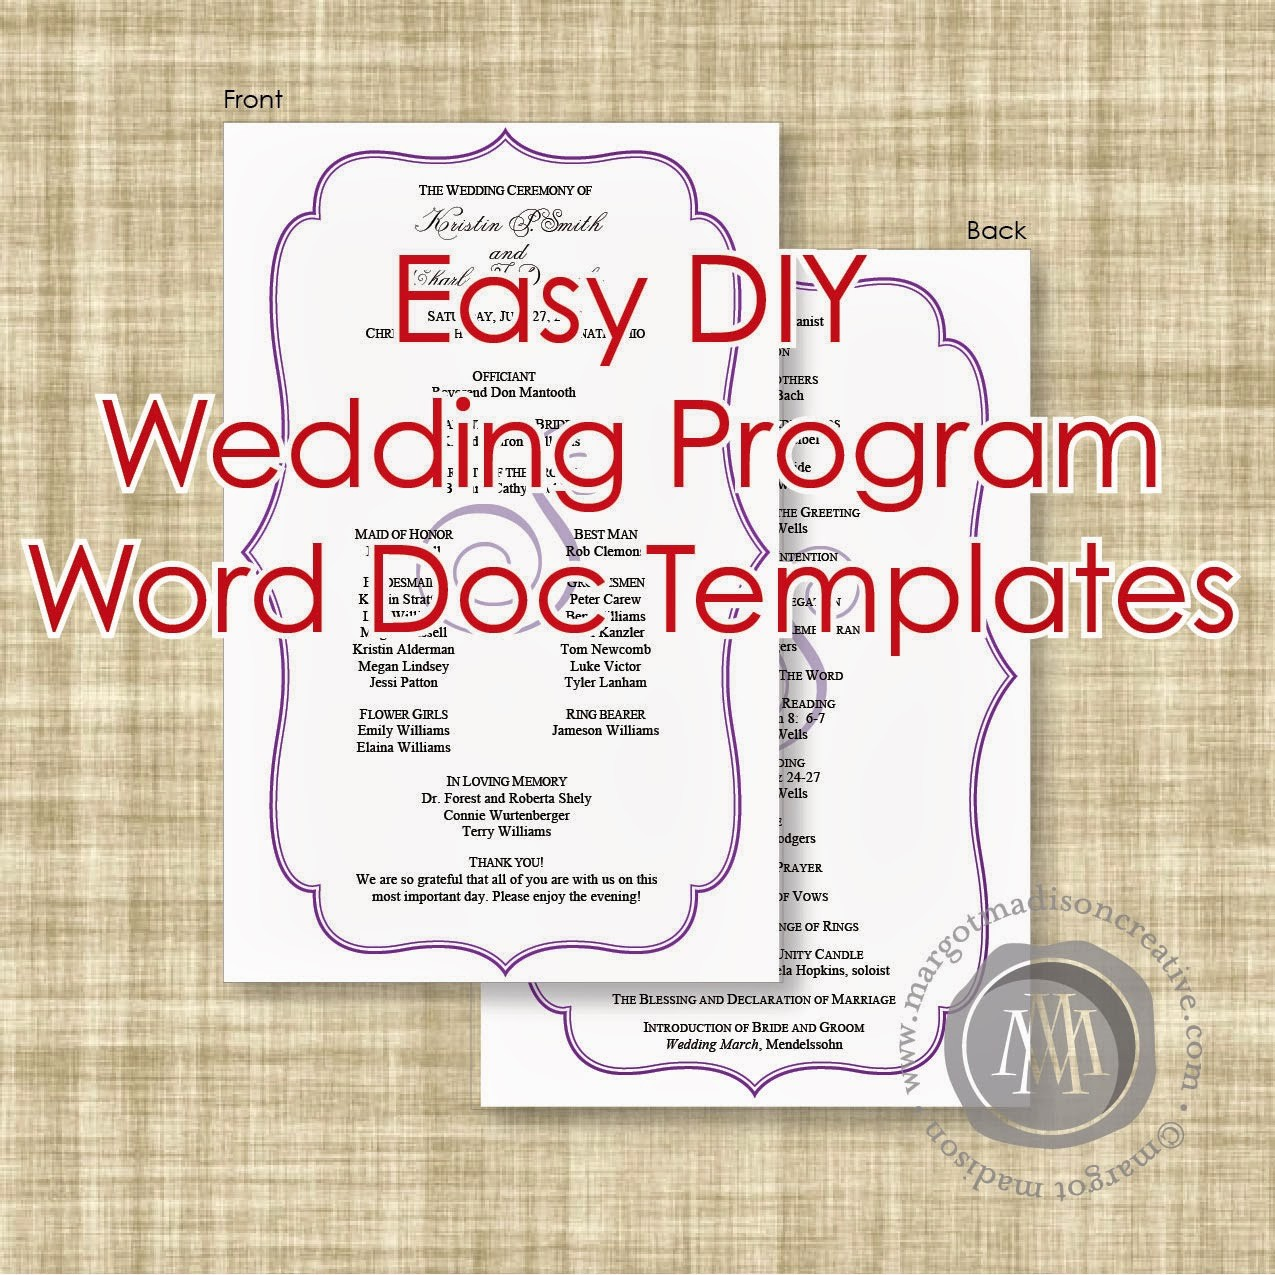 Free Word Wedding Program Template Unique Margotmadison Diy Wedding Program Word Doc Templates now